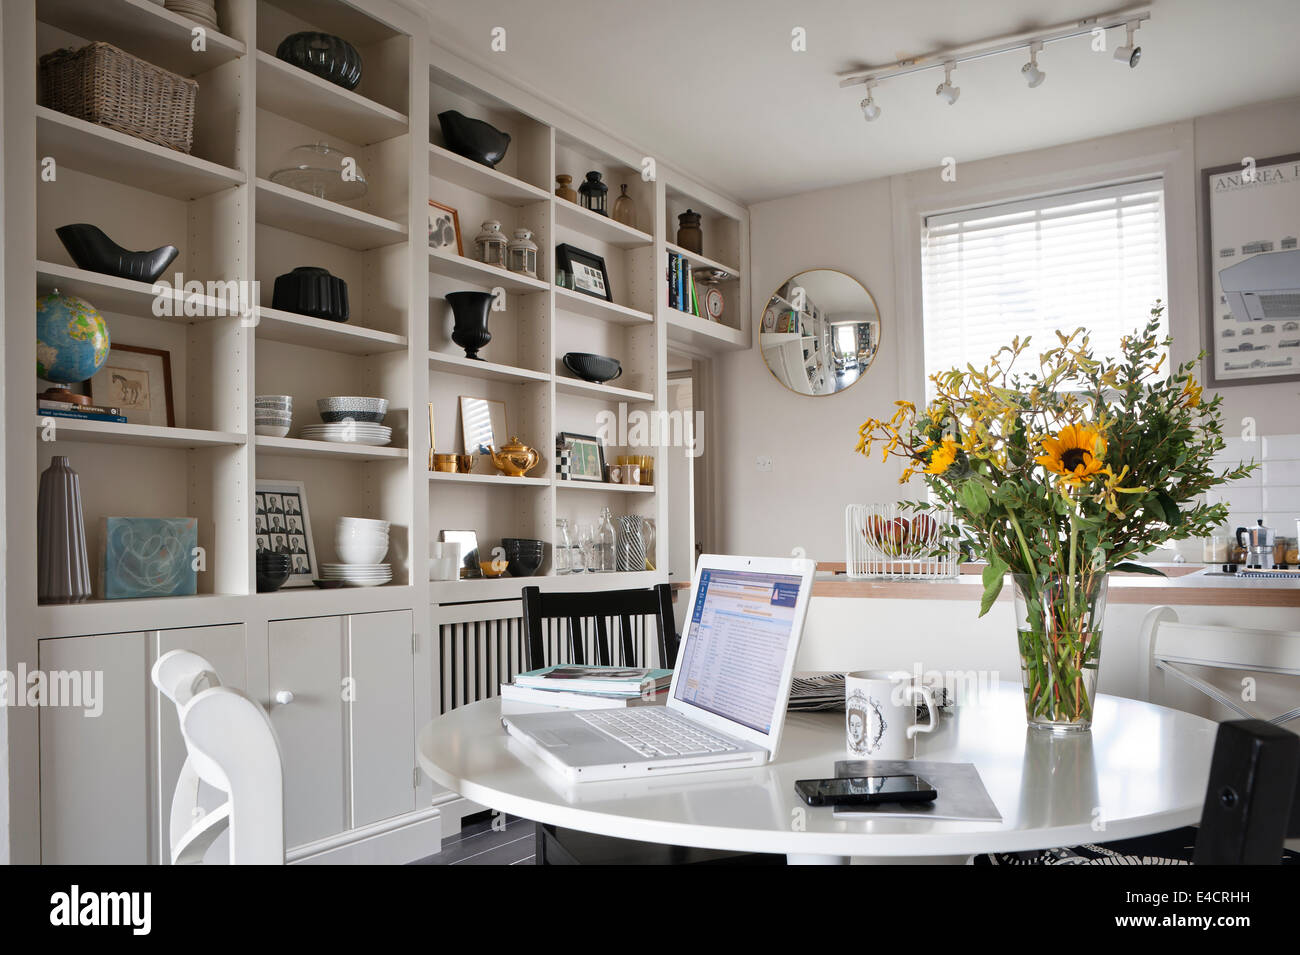 Laptop On White Ikea Table In Open Plan Kitchen And Diner